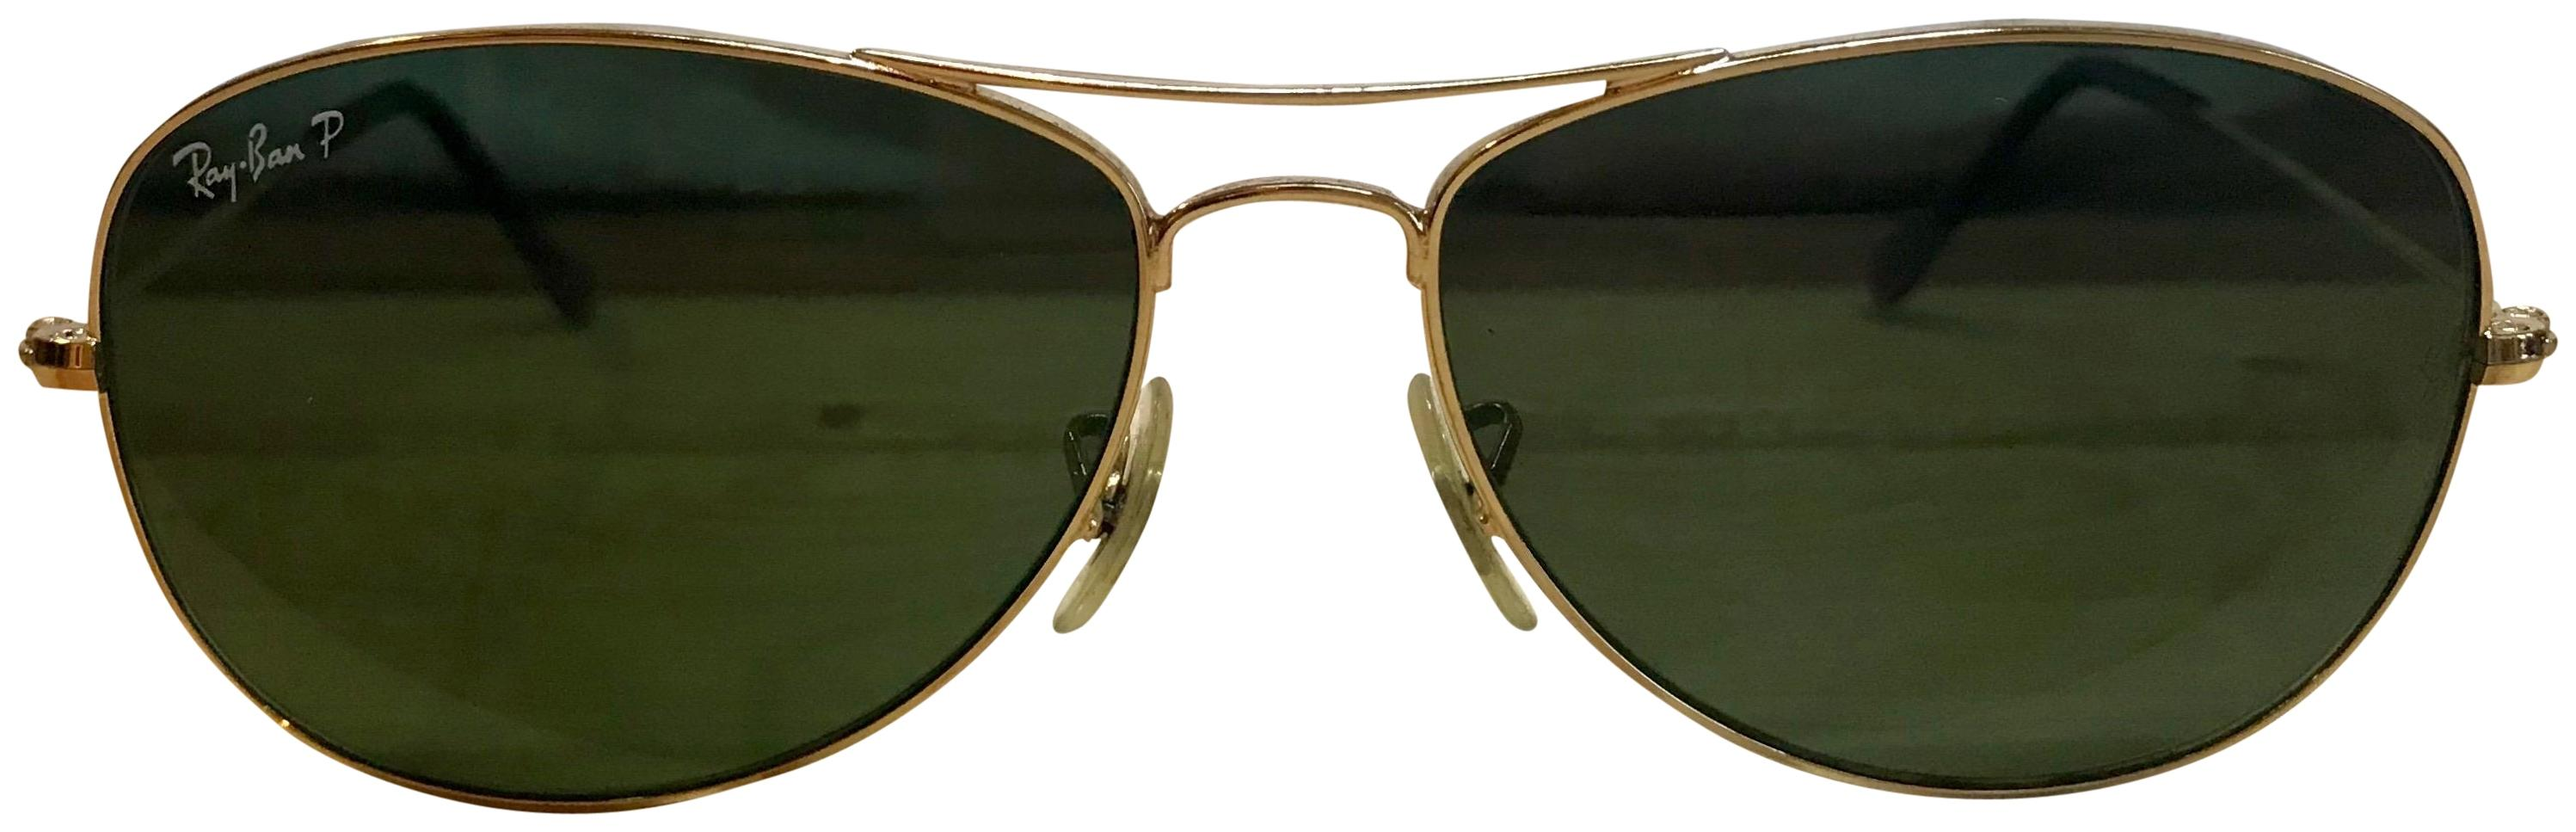 82bfc43119 ... cheap ray ban ray ban cockpit sunglasses gold green polarized rb3362  39b4d d0af2